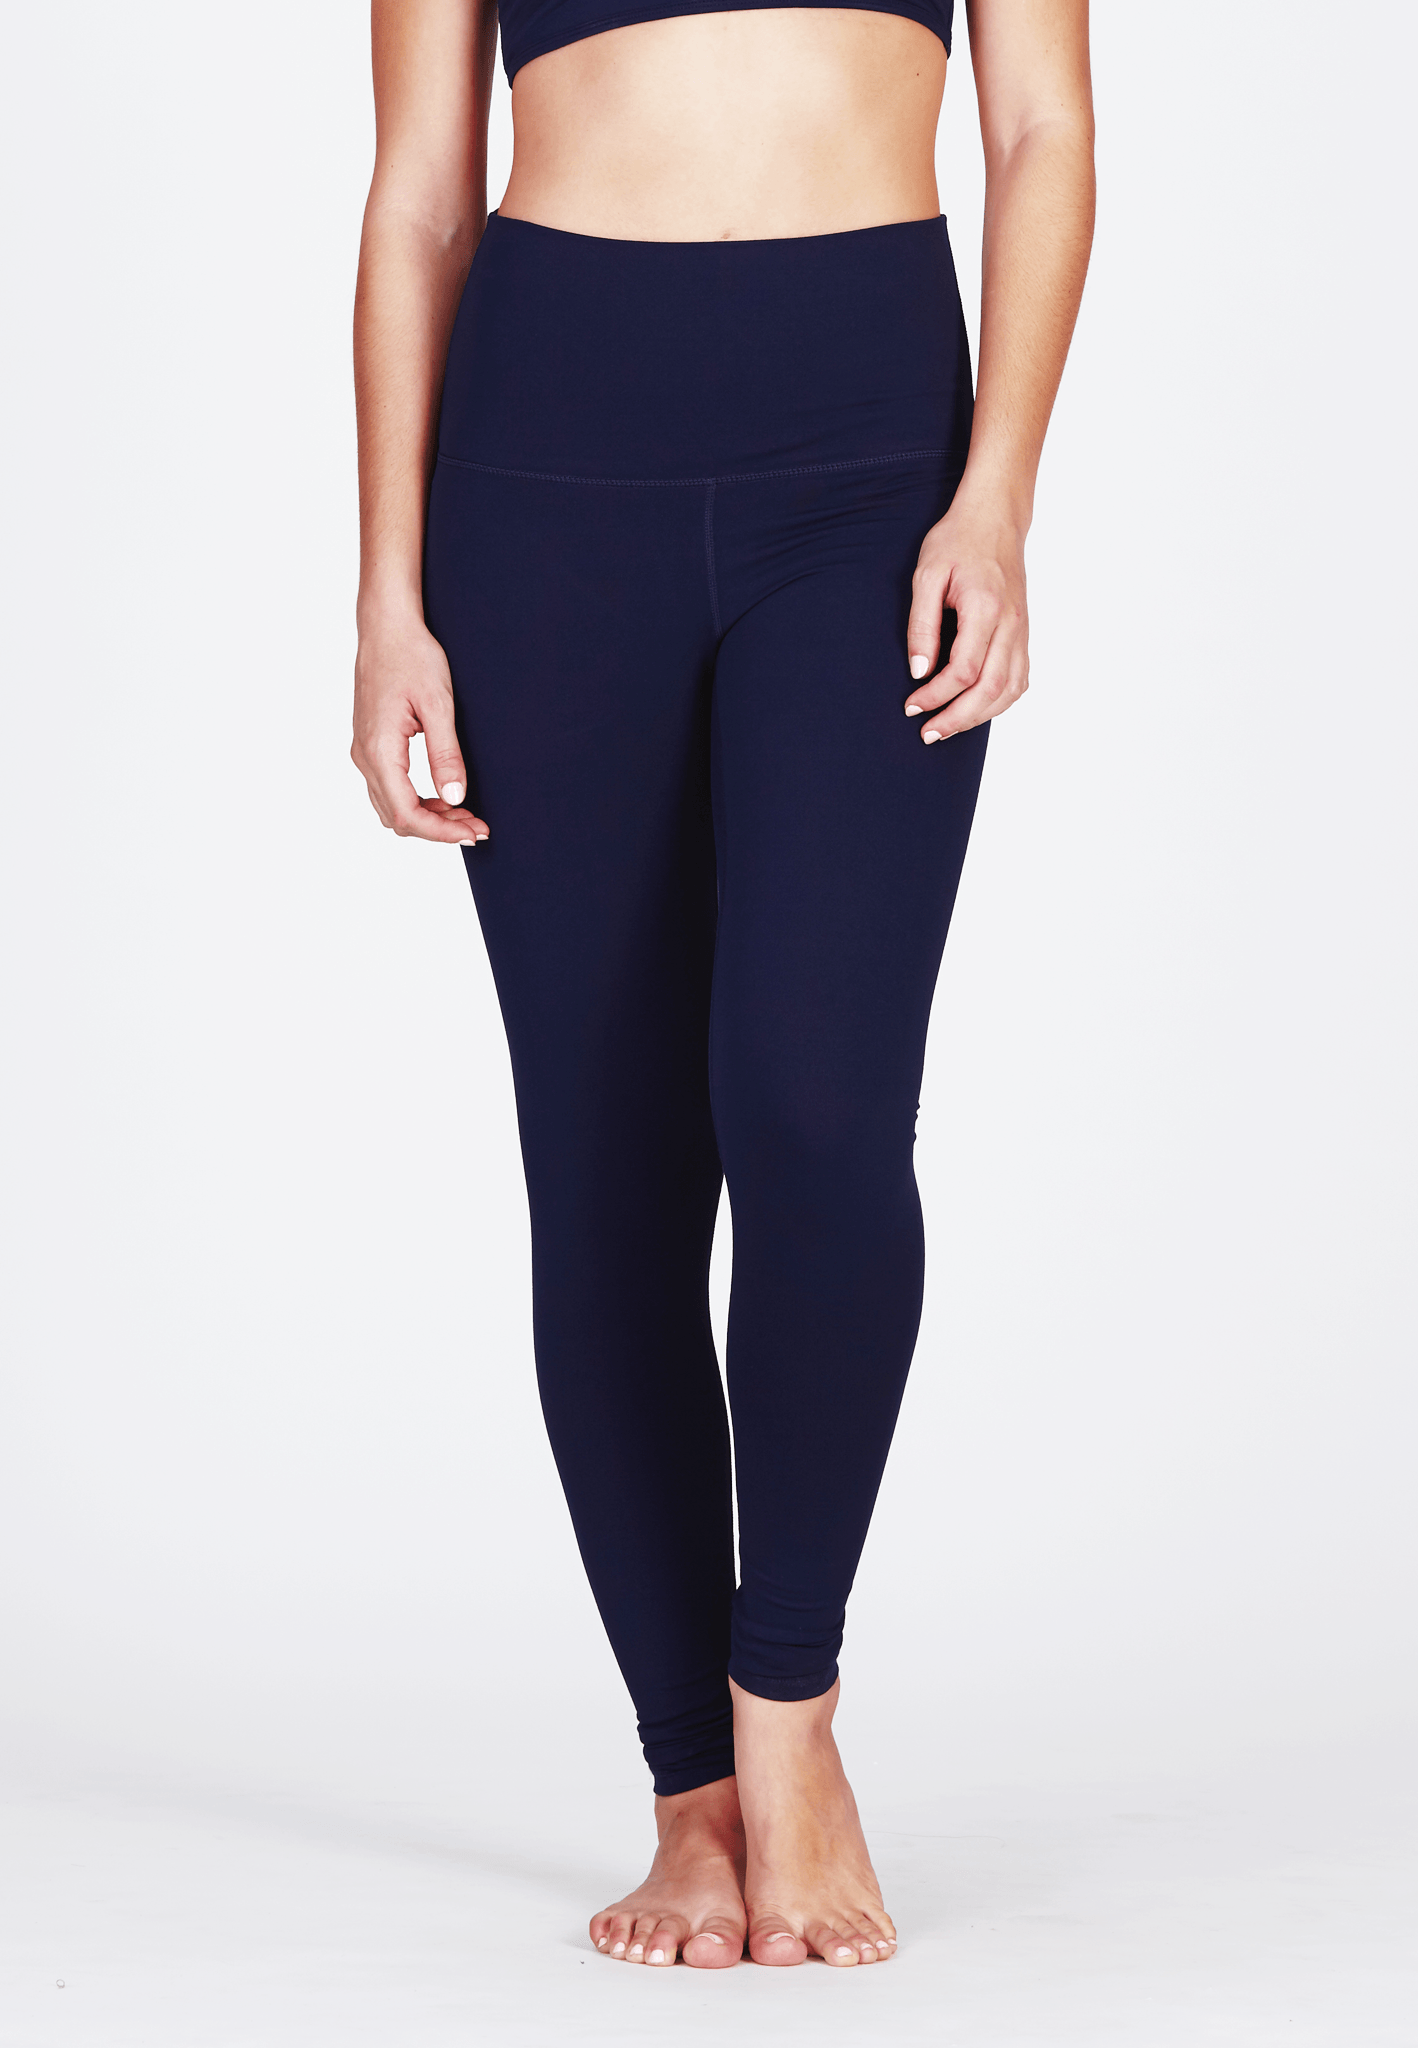 Luxtride High-Waist Leggings in Indigo (S - 3XL)